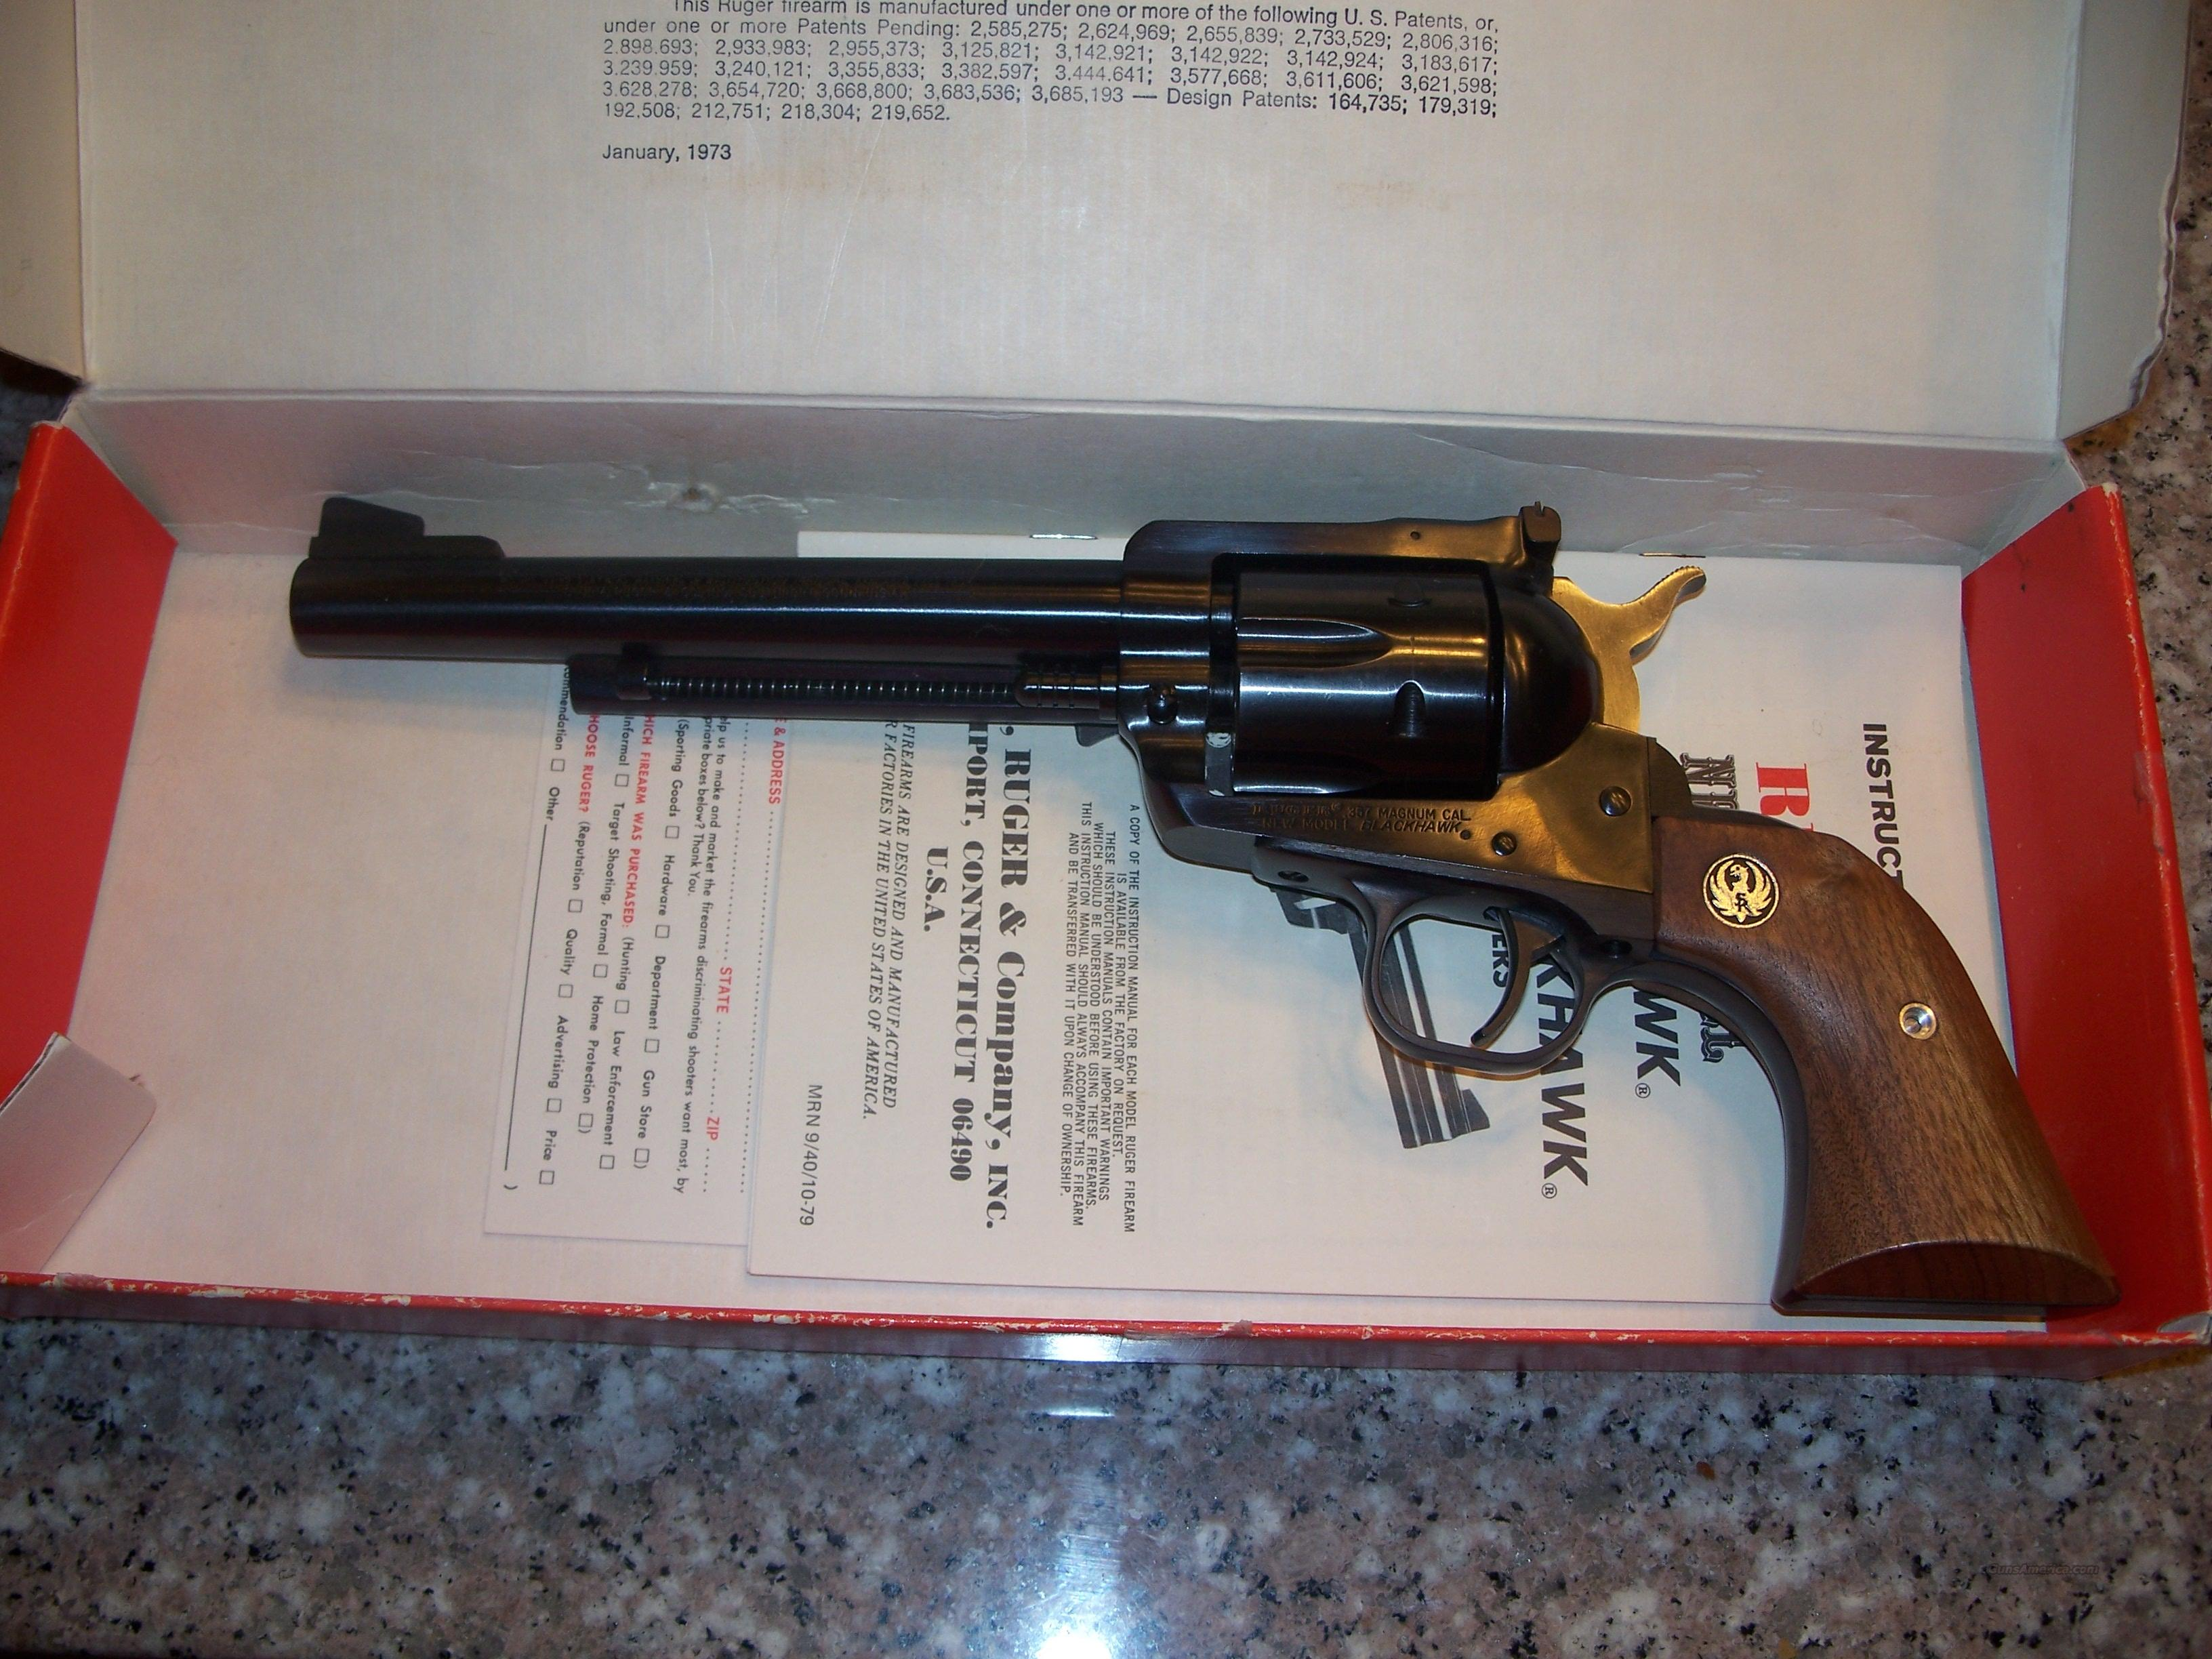 Ruger New Model Blackhawk .357 Magnum  Guns > Pistols > Ruger Single Action Revolvers > Blackhawk Type